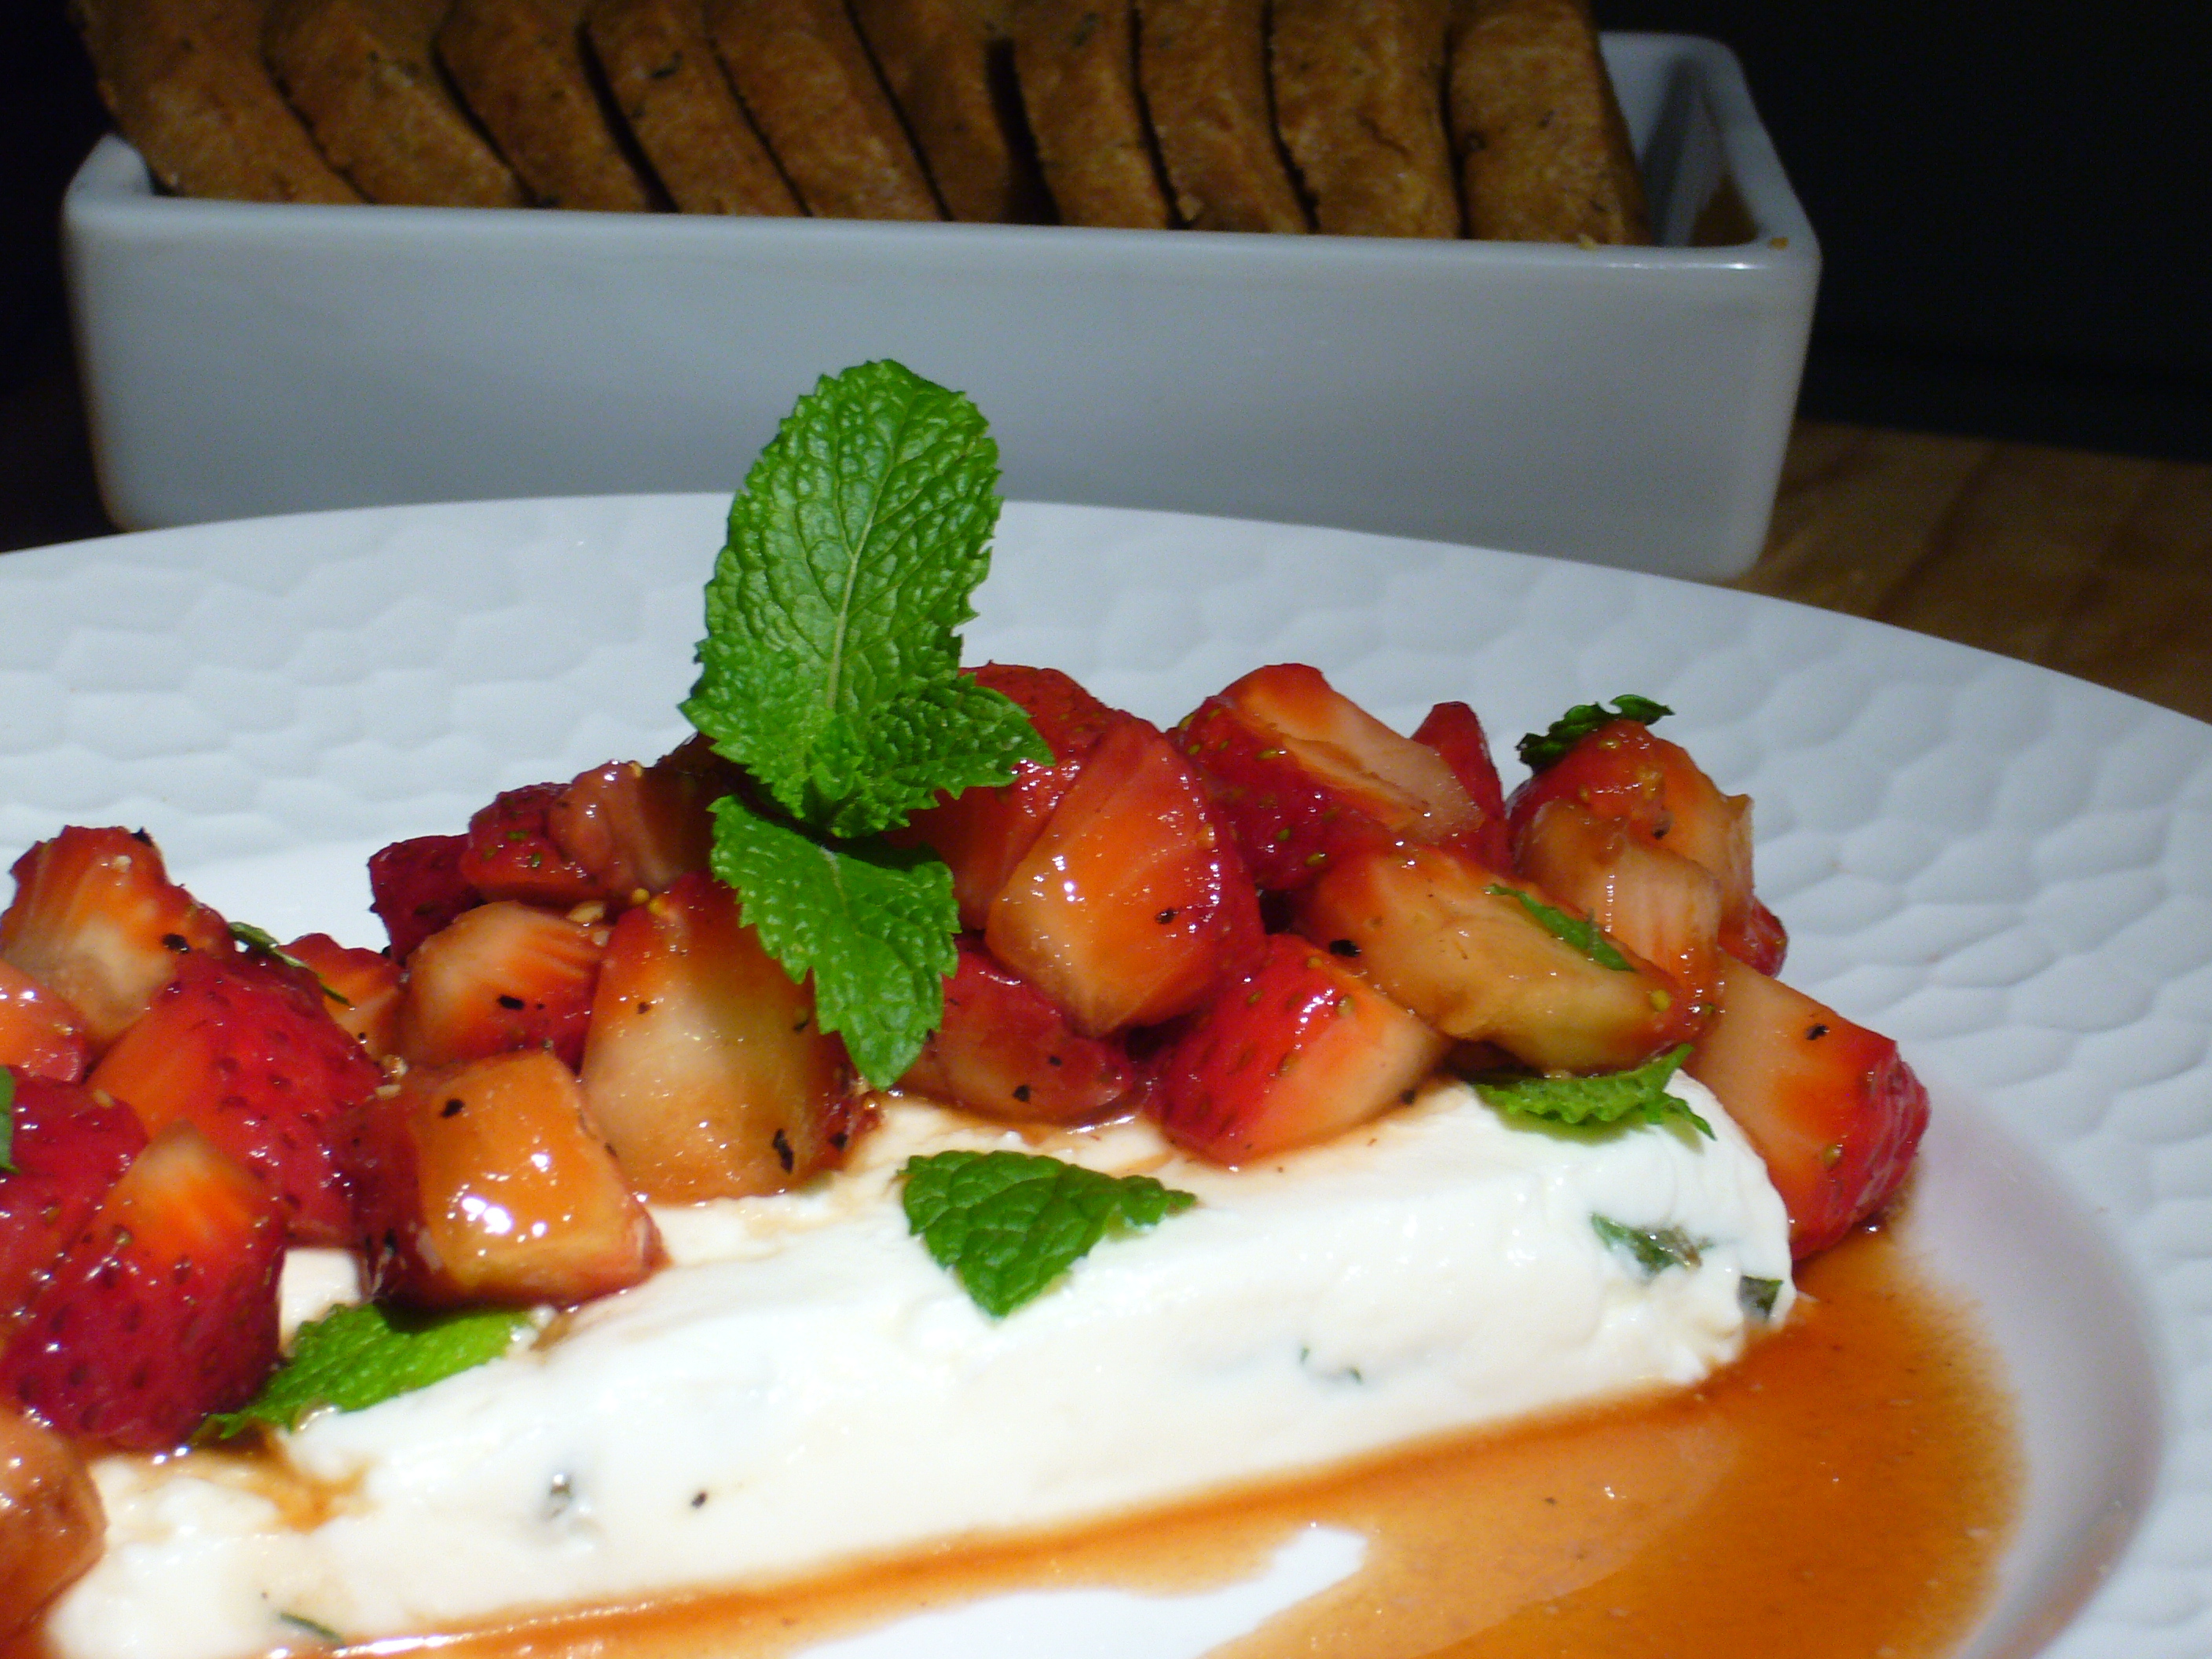 Ricotta, Chevre and Mint Layers with Balsamic Strawberries